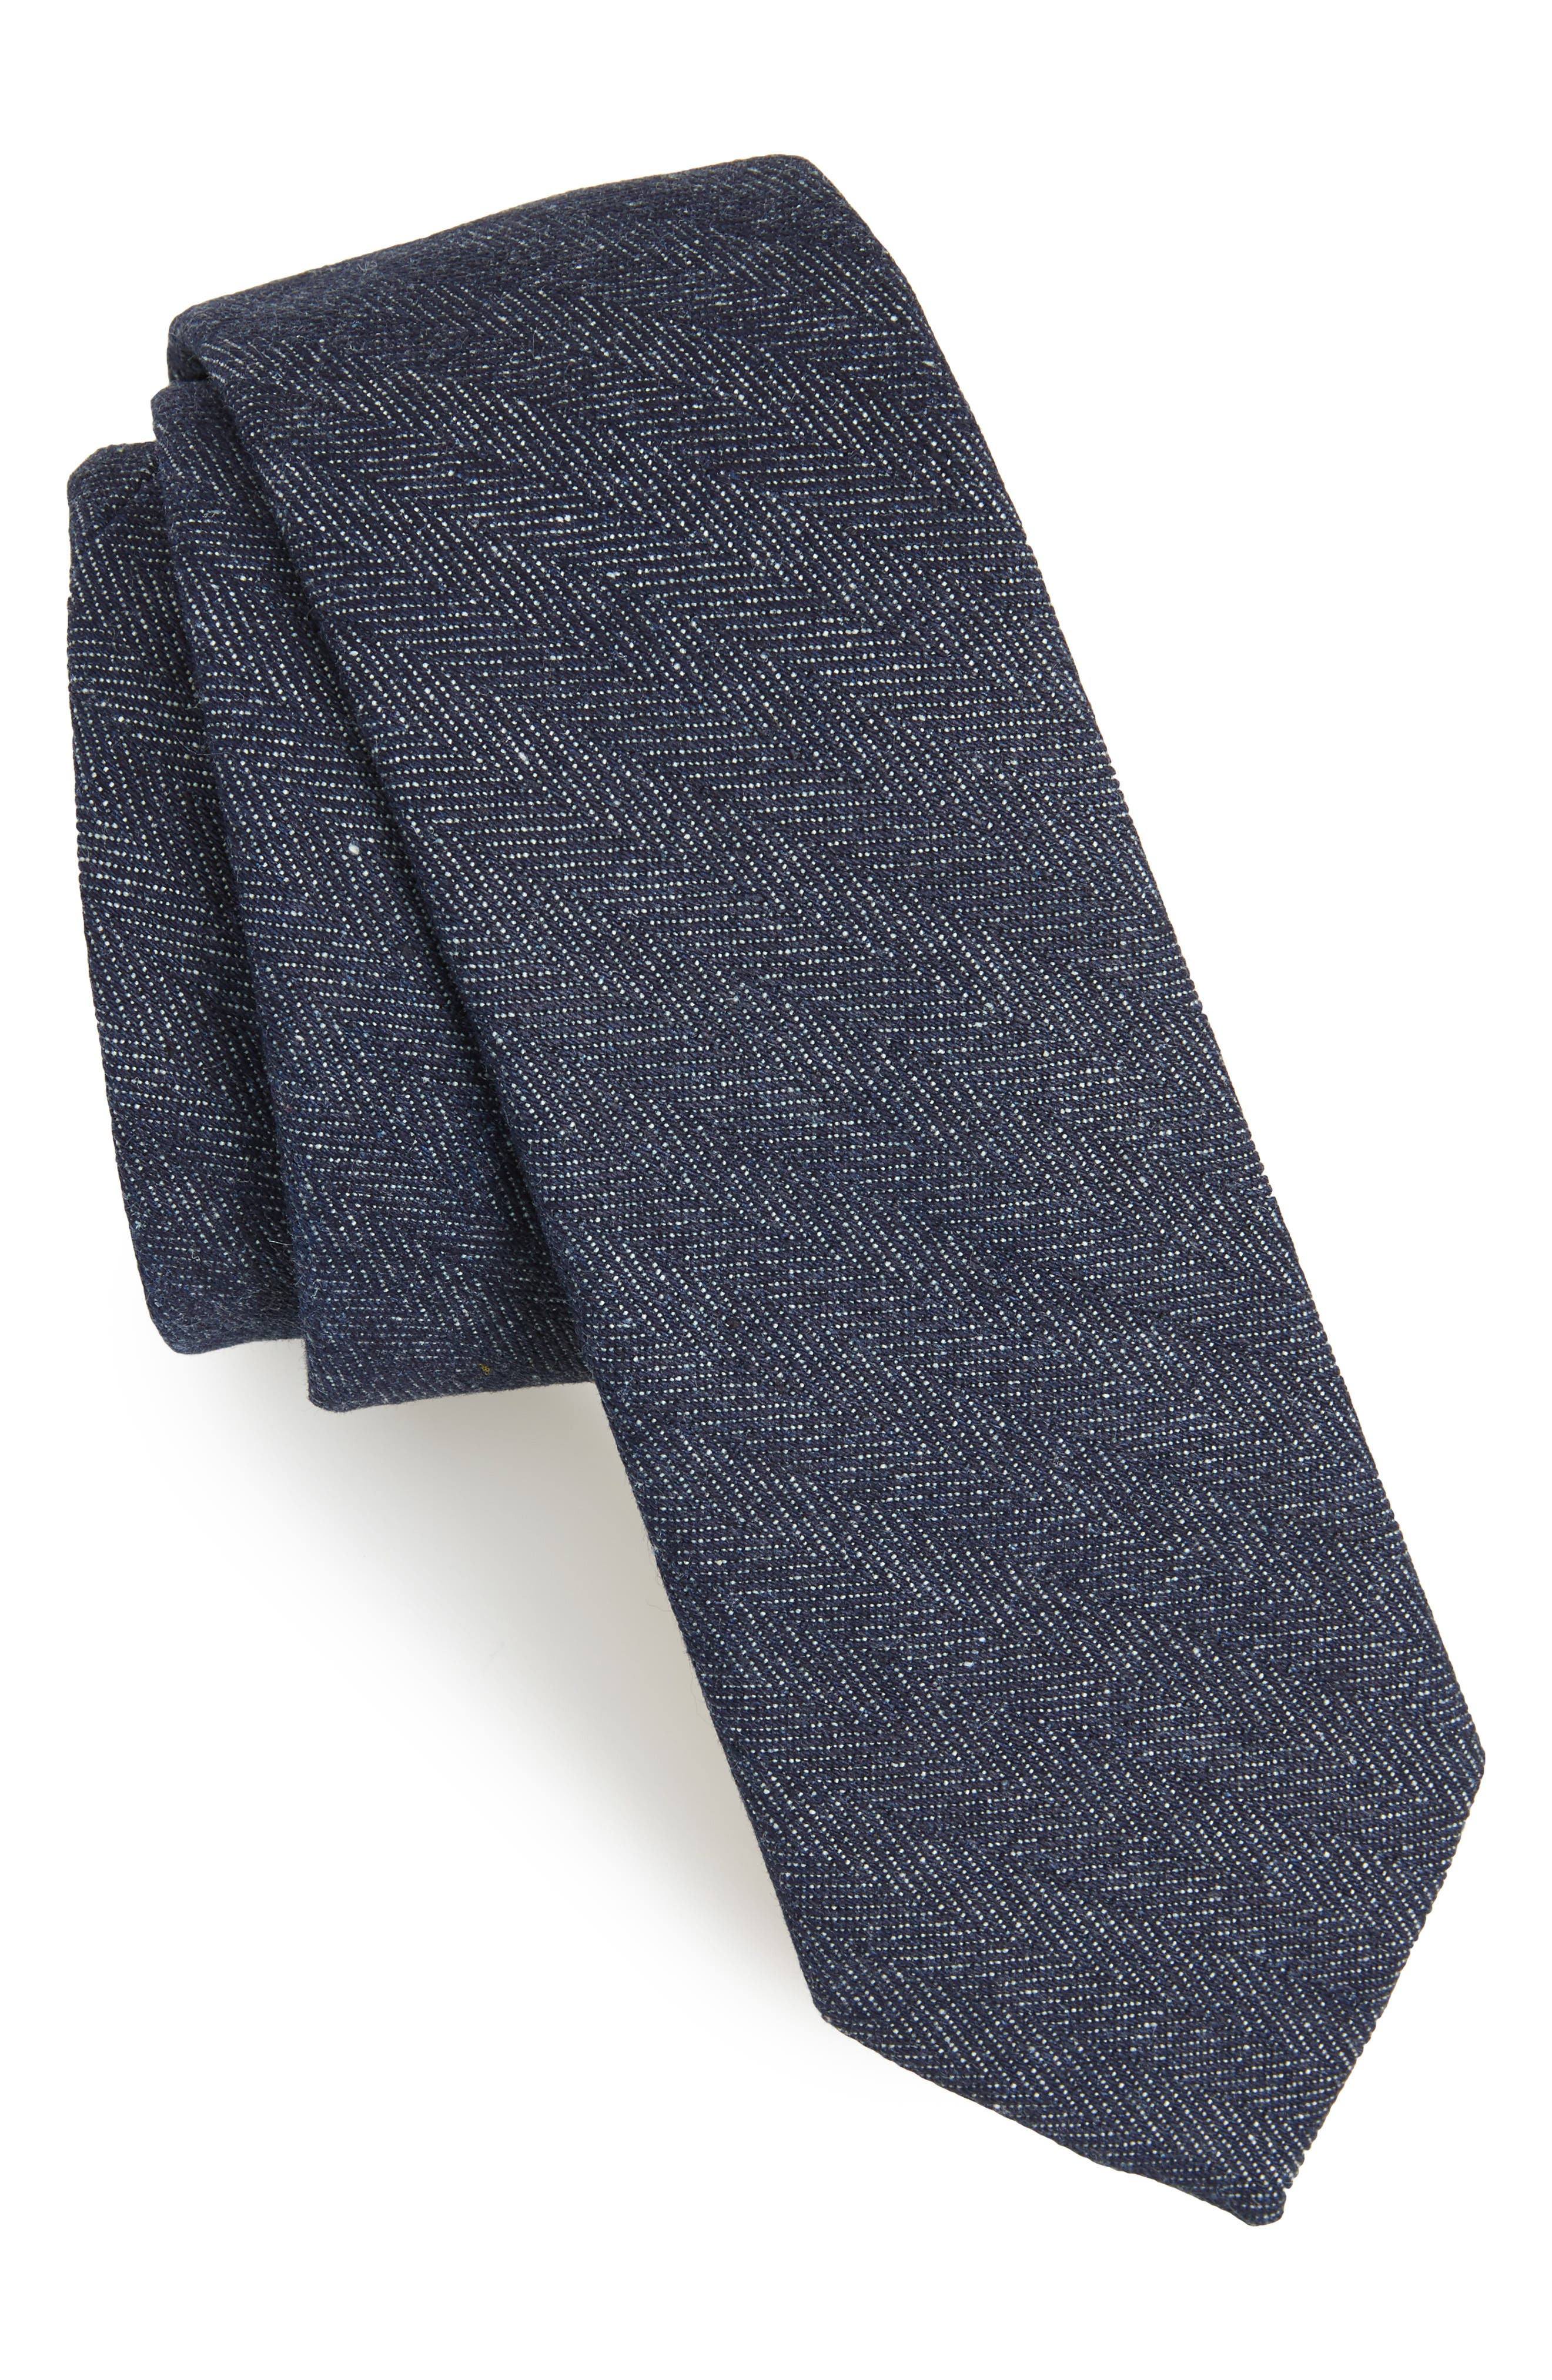 Main Image - 1901 Thames Solid Skinny Tie